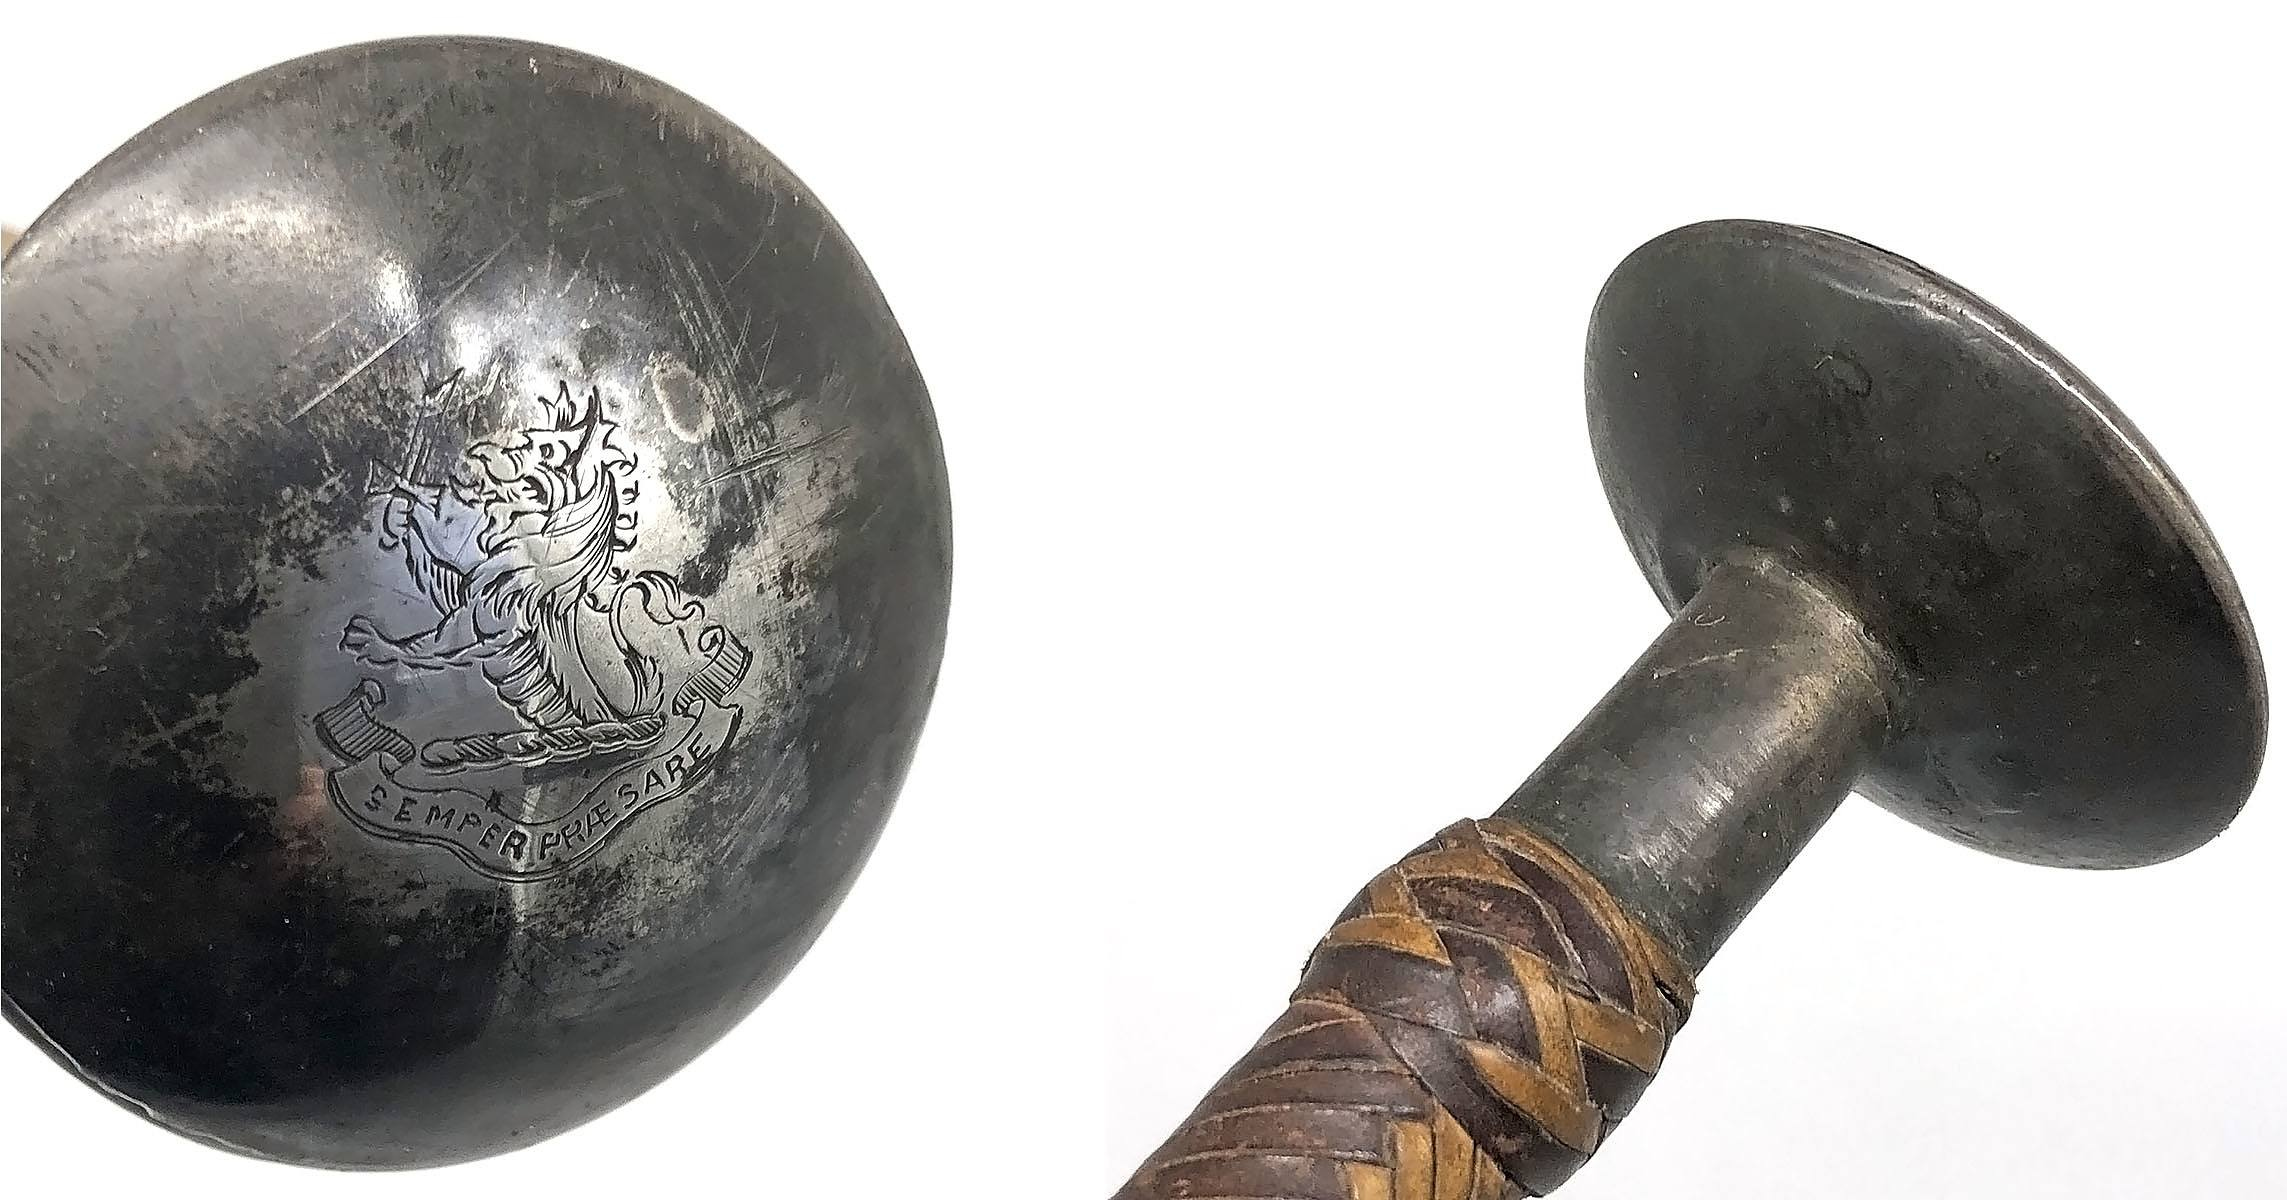 'Silver Topped Riding Crop - Provenance Henry Parkes (by Repute) Engraved SEMPER PRAESARE'